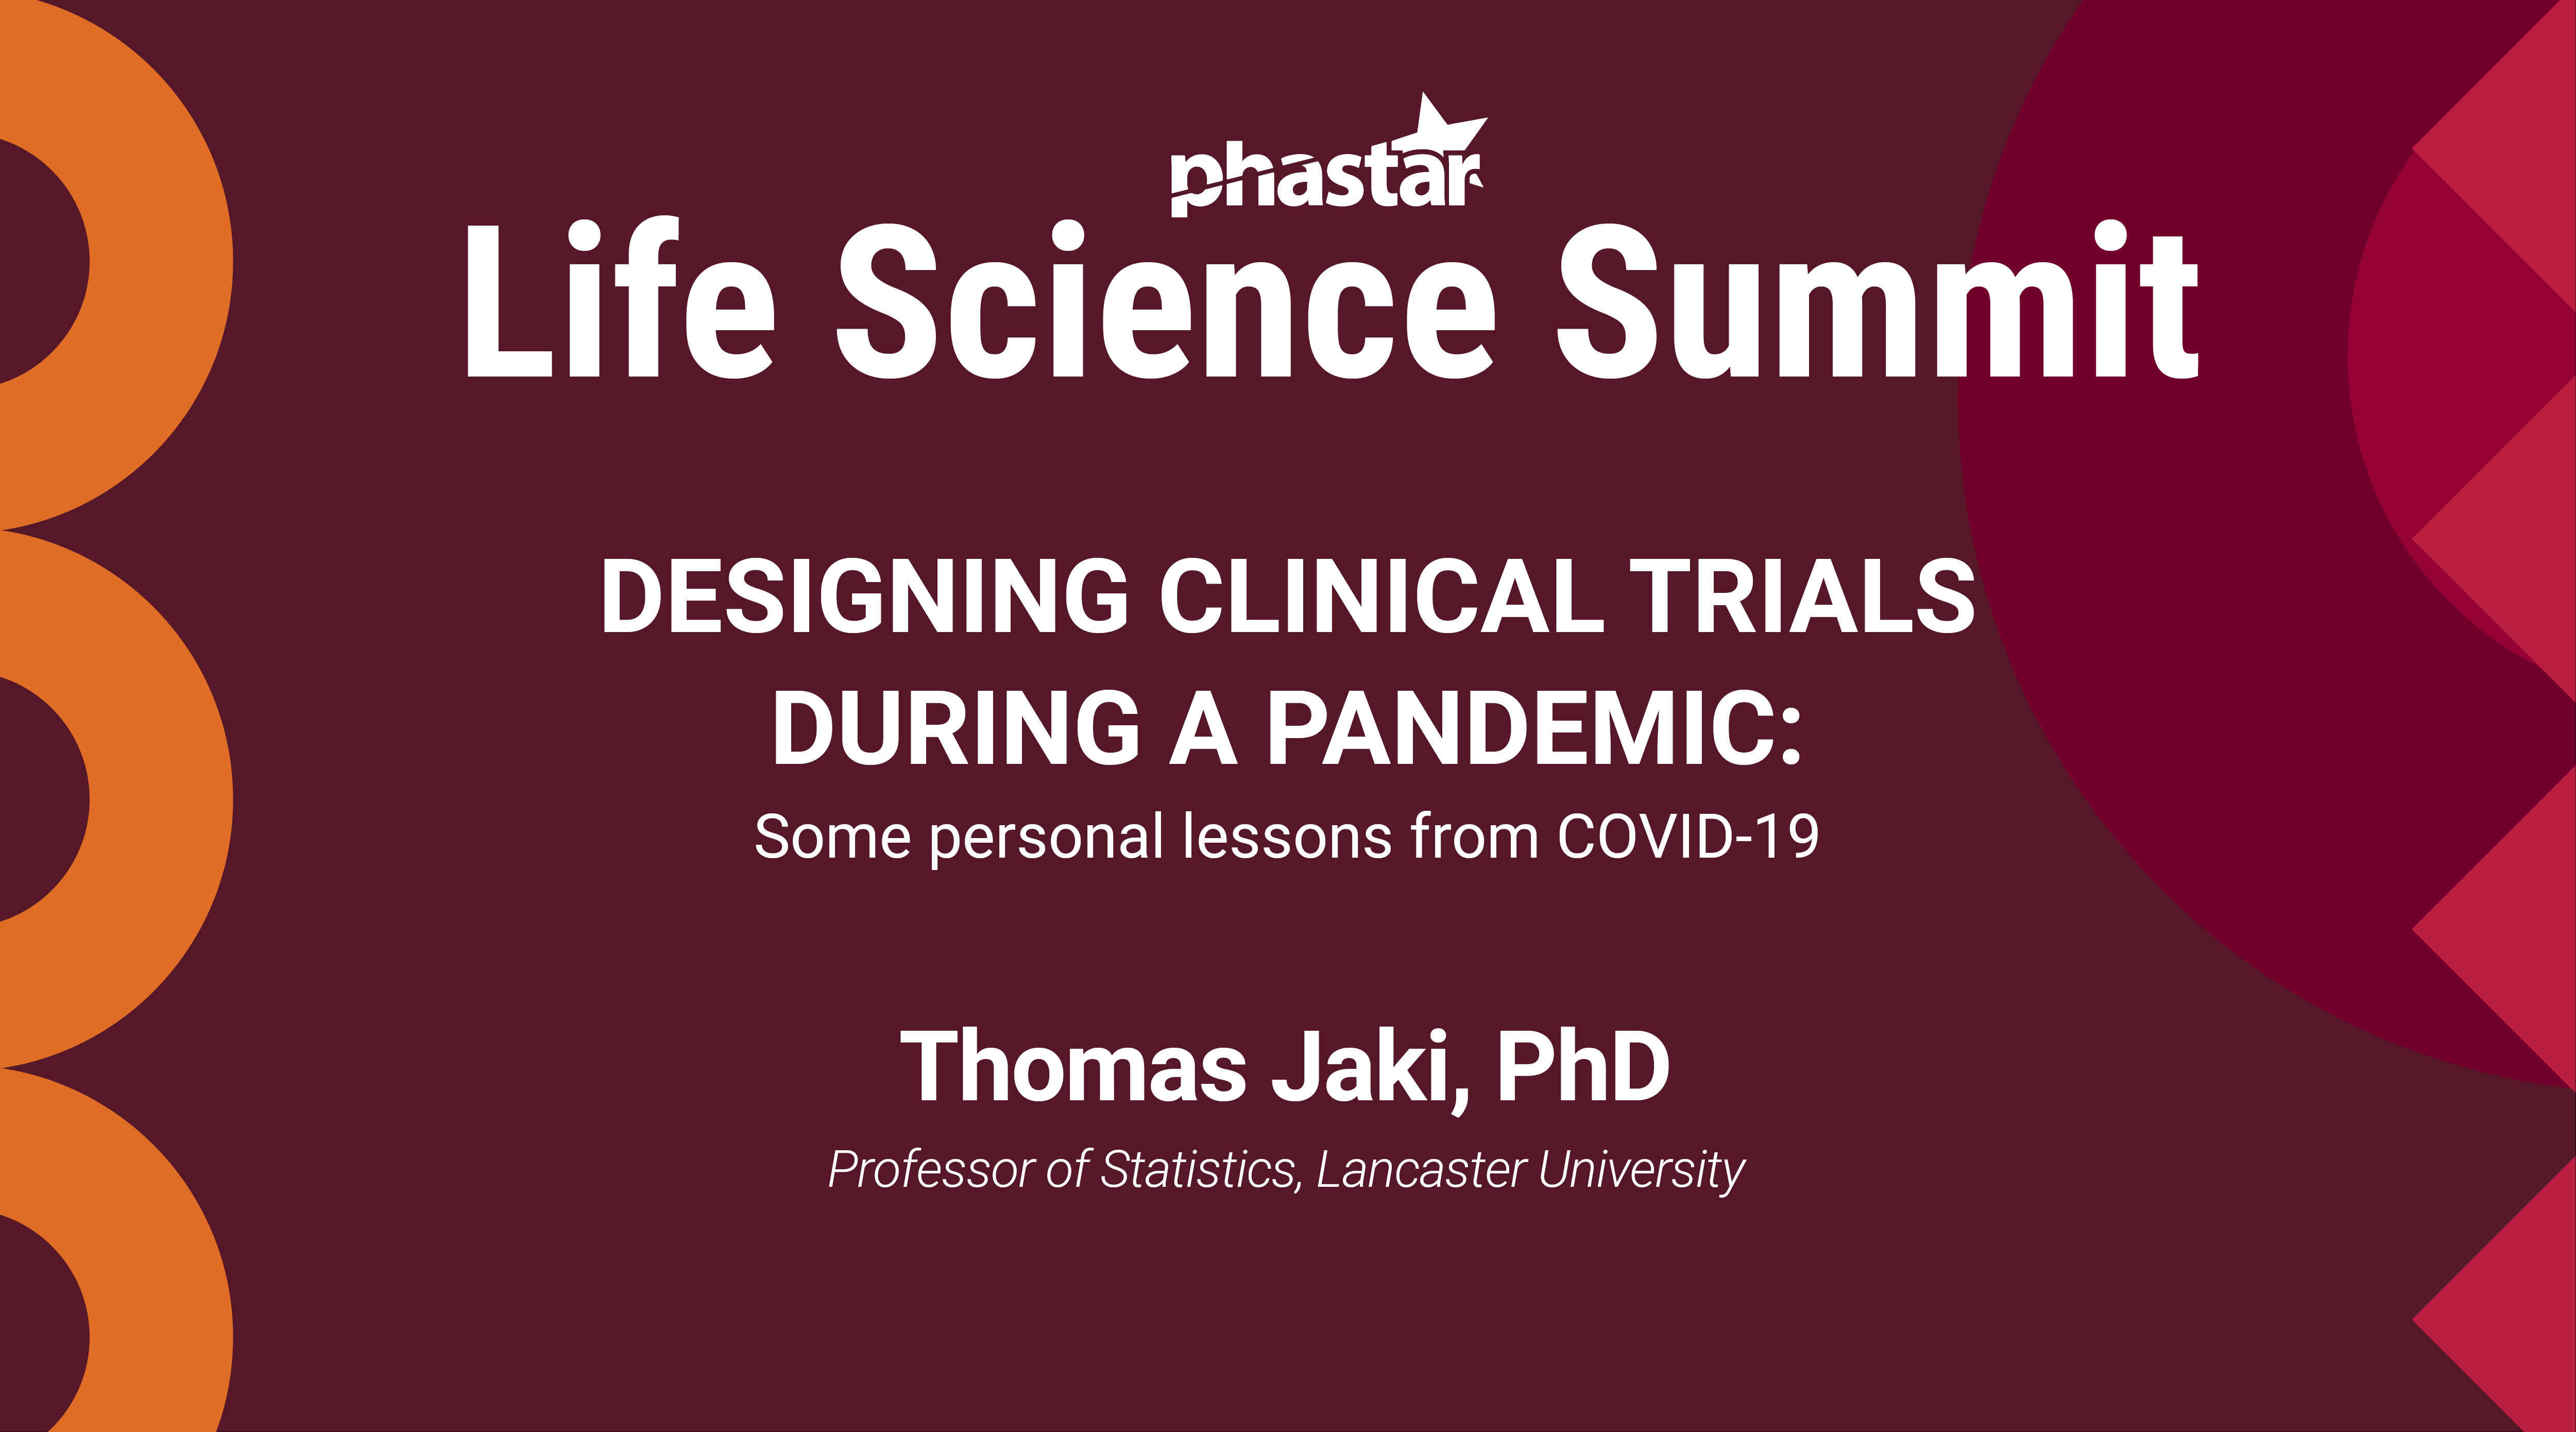 Designing Clinical Trials During a Pandemic - Some Personal Lessons From COVID-19